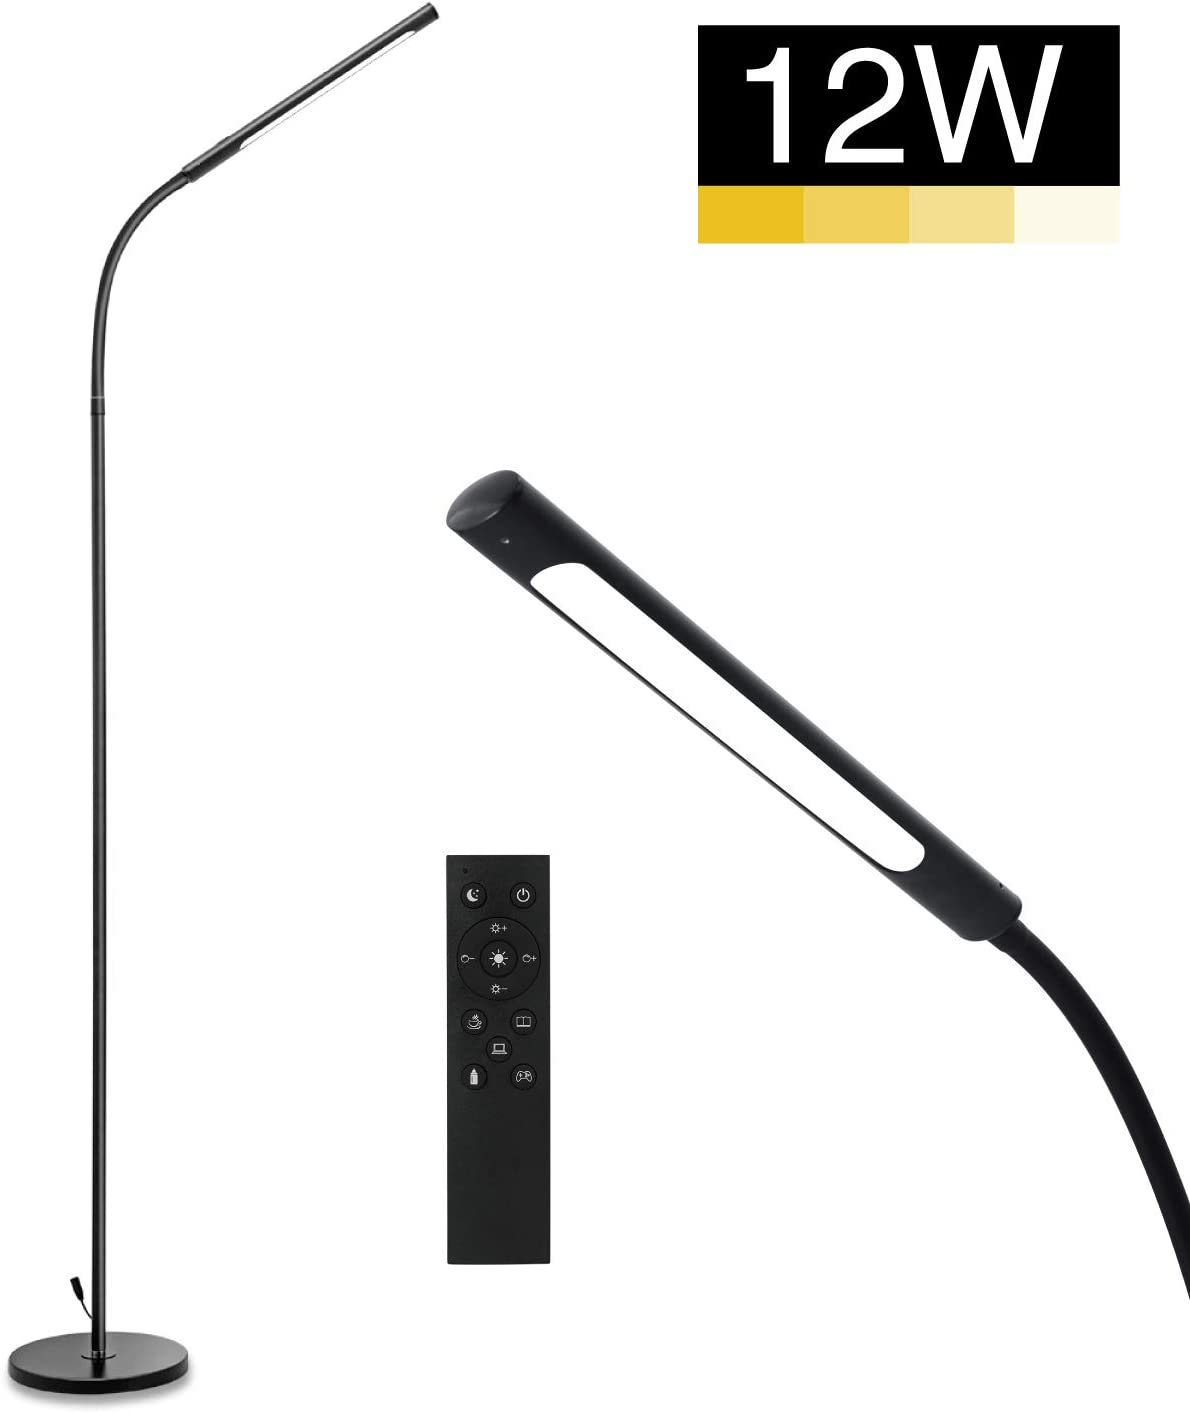 IMIGY 12W Floor Lamp, 600 Lumens Dimmable Flexible Gooseneck Standing LED Lamp, 4 Color Modes, Stepless Brightness Dimmable, Eye-Care Touch Remote Control for Living Room, Bedroom, Office, Black